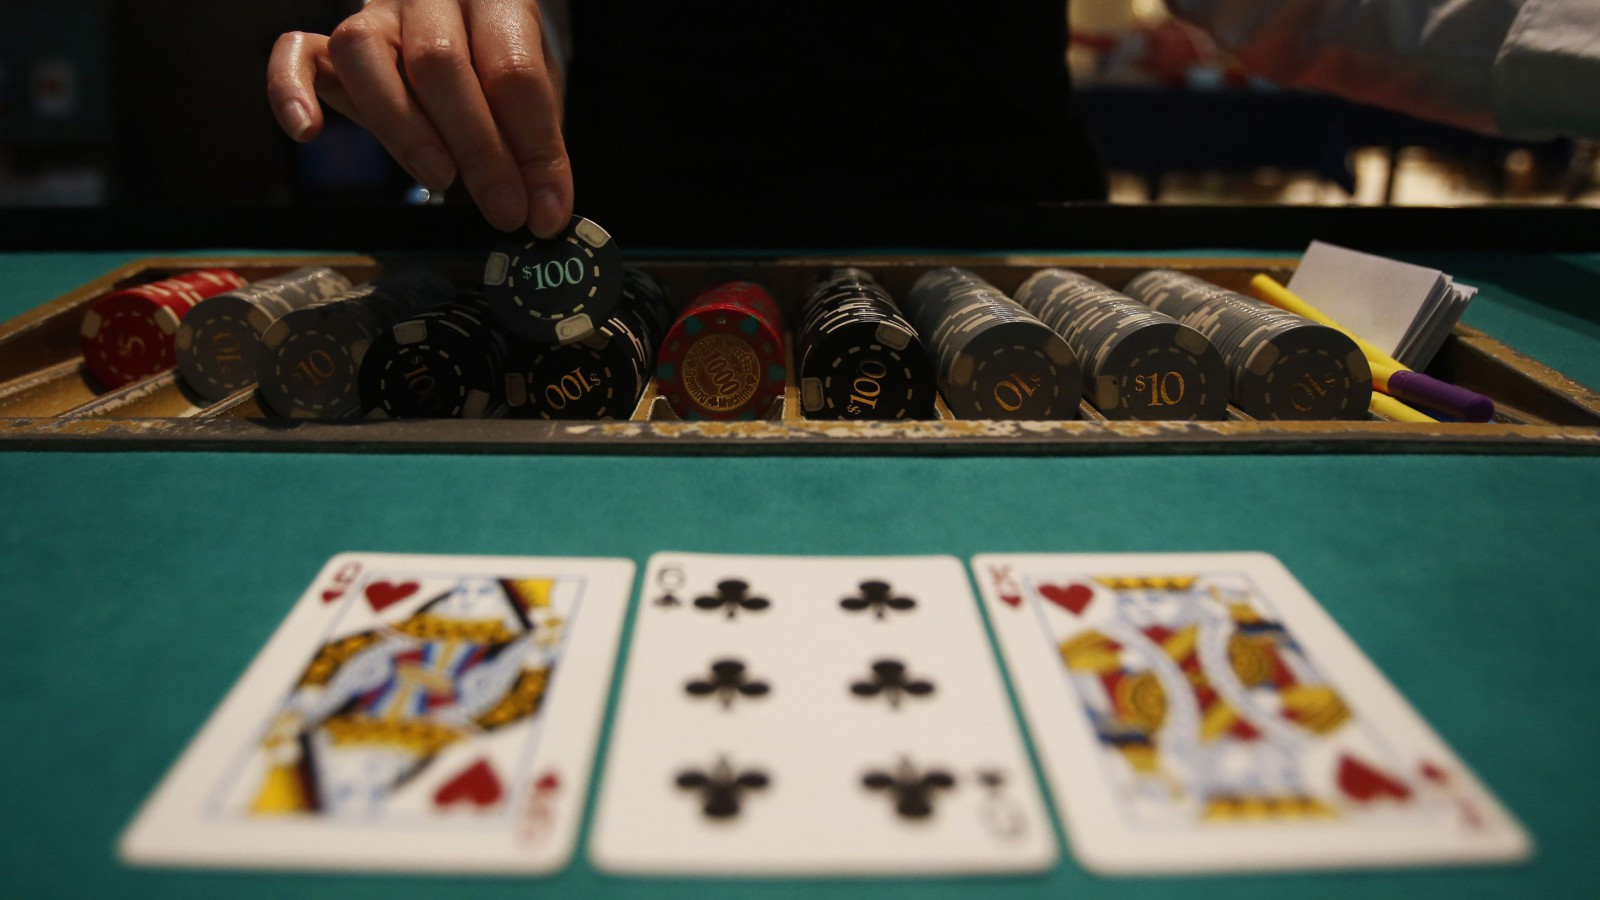 A dealer picks up chips on a mock black jack casino table during a photo opportunity at an international tourism promotion symposium in Tokyo September 28, 2013. With lawmakers planning to submit legislation soon to open Japan to casino gambling, likely in time for the 2020 Olympics, several small cities, hot spring towns and tourist destinations are pushing to get one of the coveted licences. Japan is one of the world's last untapped gaming markets and, with a wealthy population and proximity to China, could generate $15 billion annually from casinos, industry experts say. That would make it the world's second-largest gambling destination after Macau. Picture taken September 28, 2013. REUTERS/Yuya Shino (JAPAN - Tags: POLITICS BUSINESS SOCIETY) - RTX15VJM